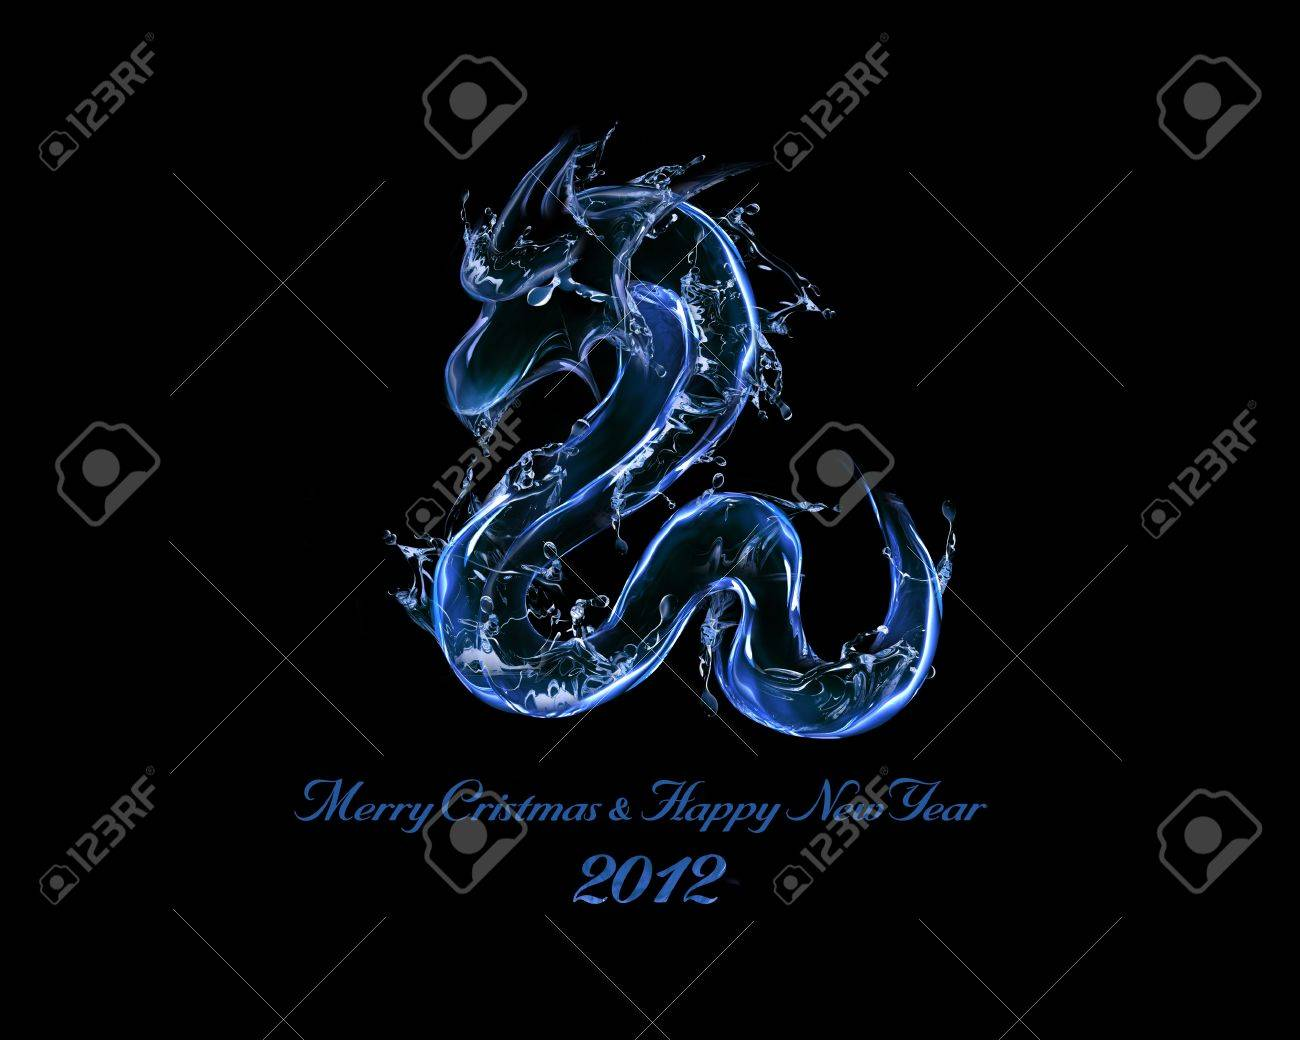 2012 is Year of Black Water Dragon: liquid concept of New Year 2012 illustration for greeting card, calendar cover Stock Illustration - 11454717